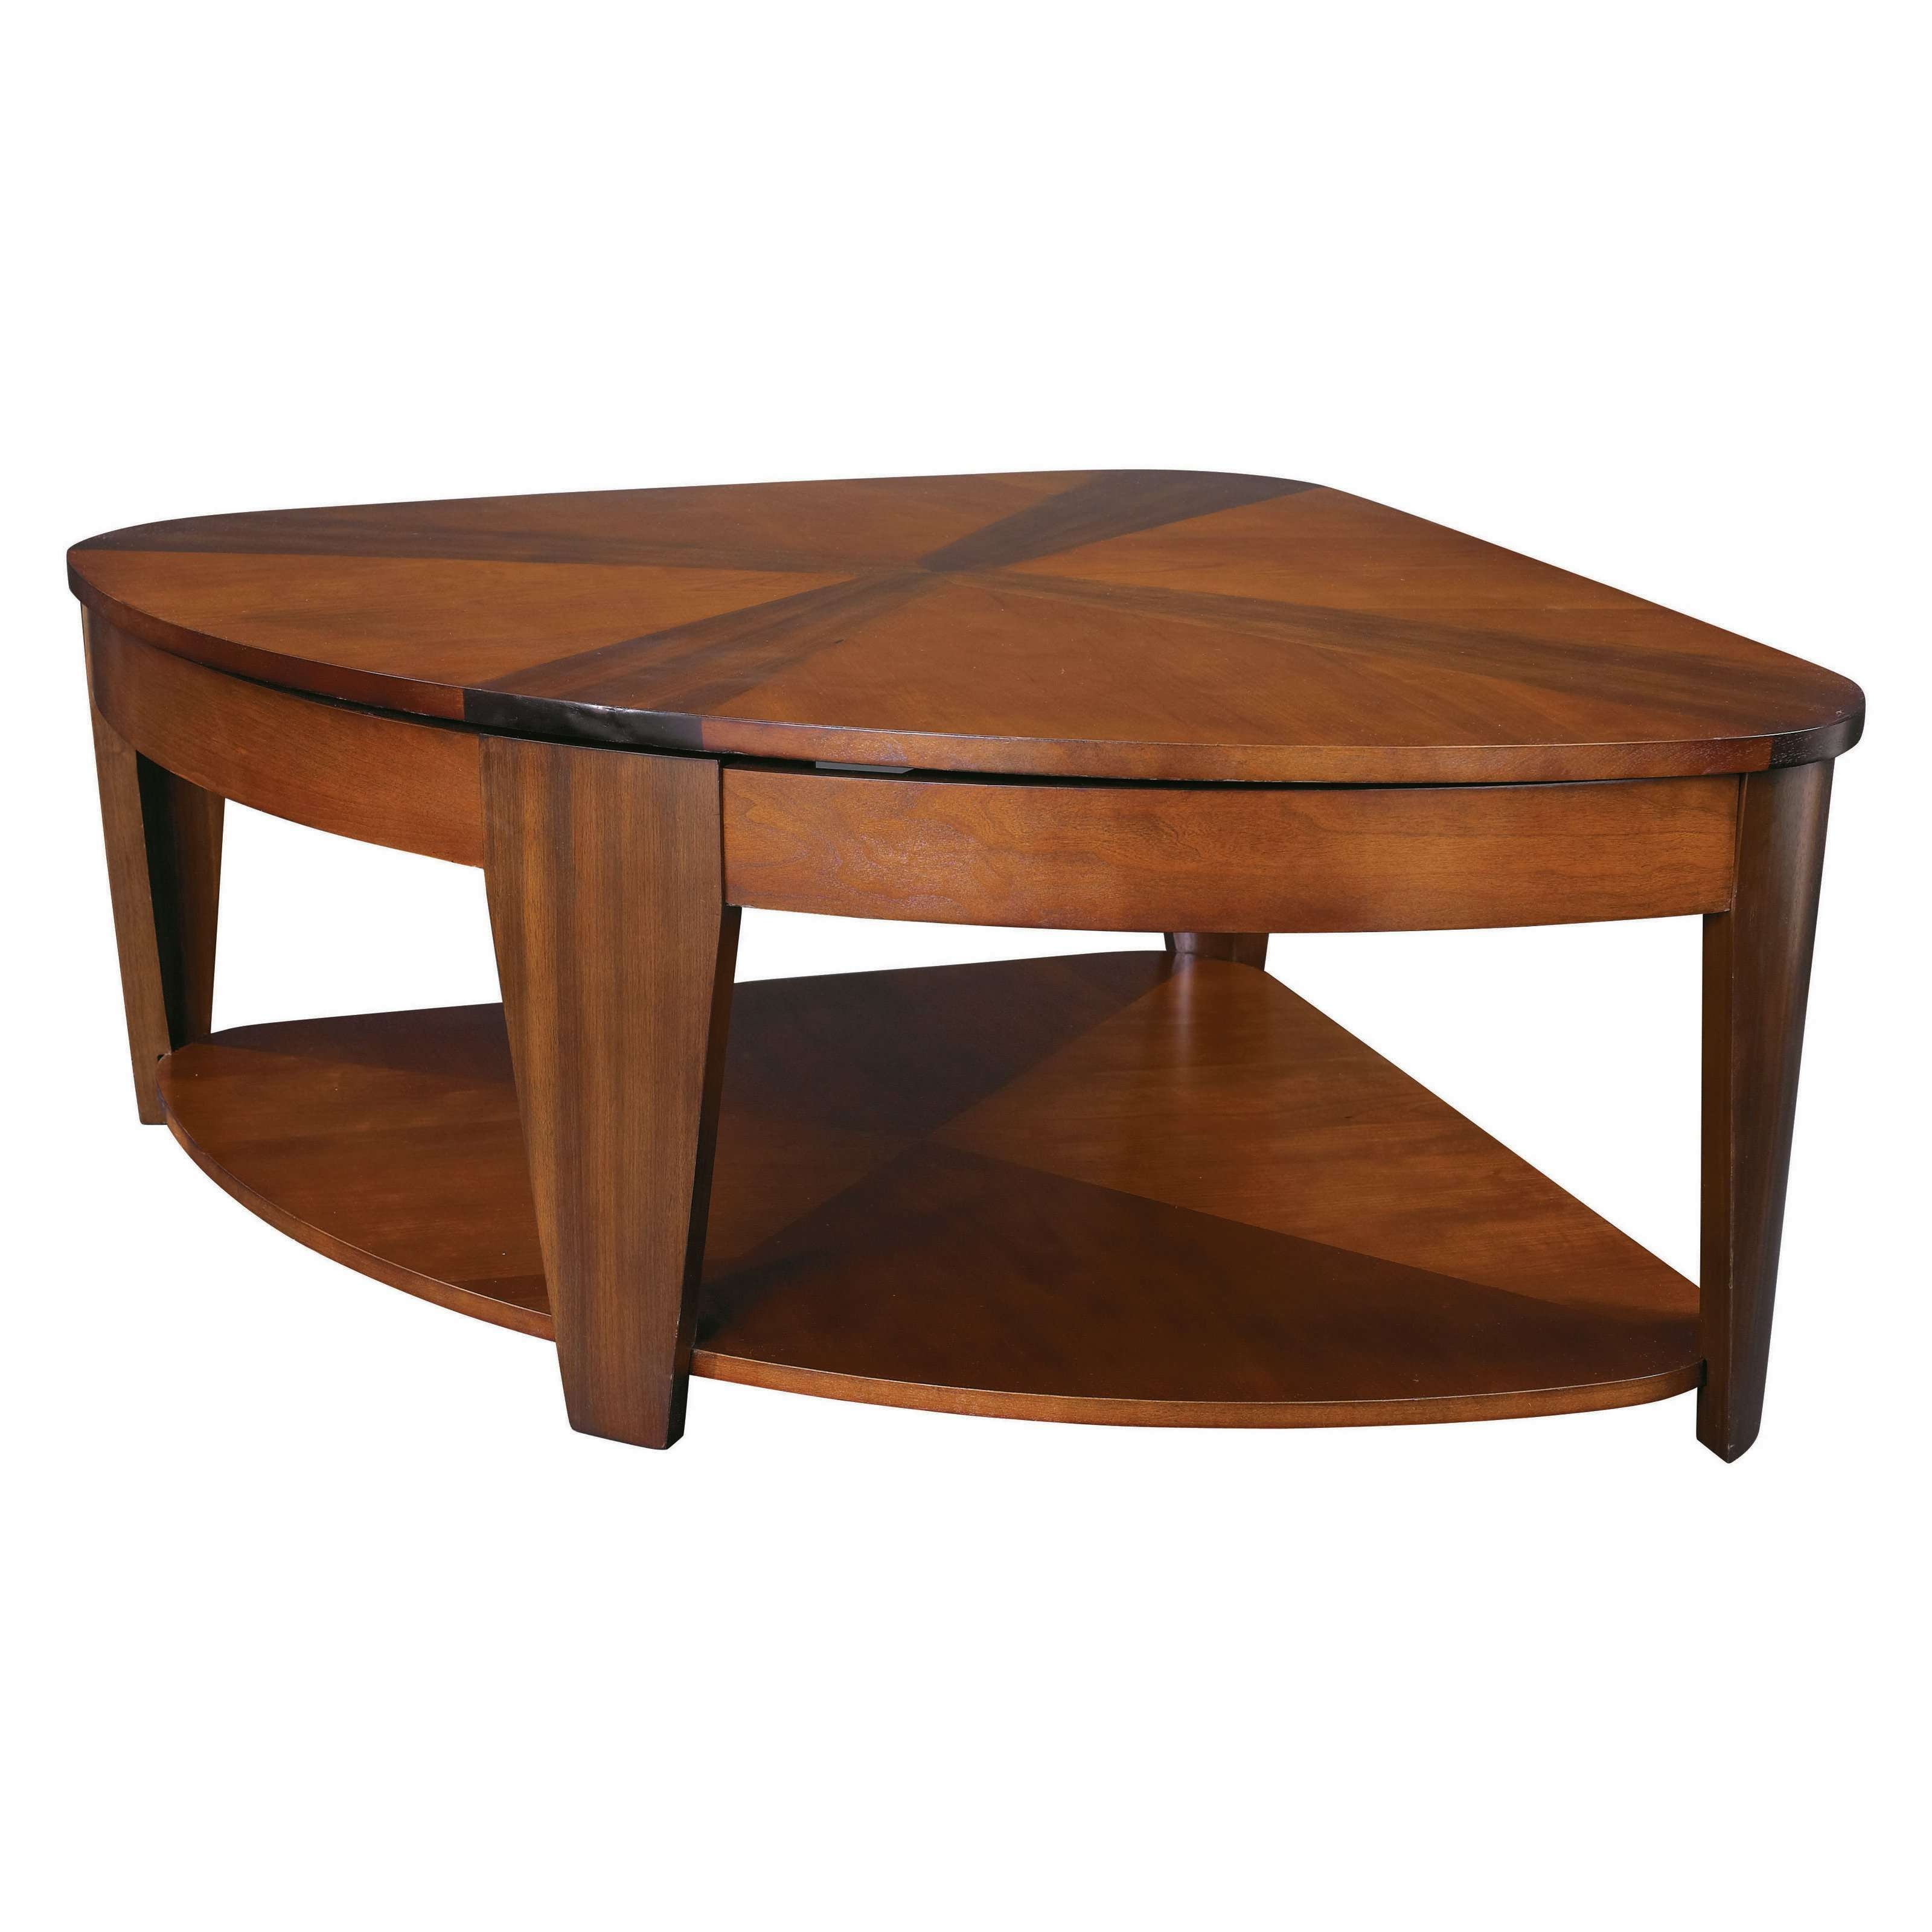 Famous Raise Up Coffee Tables Within Coffee Tables : Trendy Contemporary Dining Room Glass Top Wood (View 14 of 20)